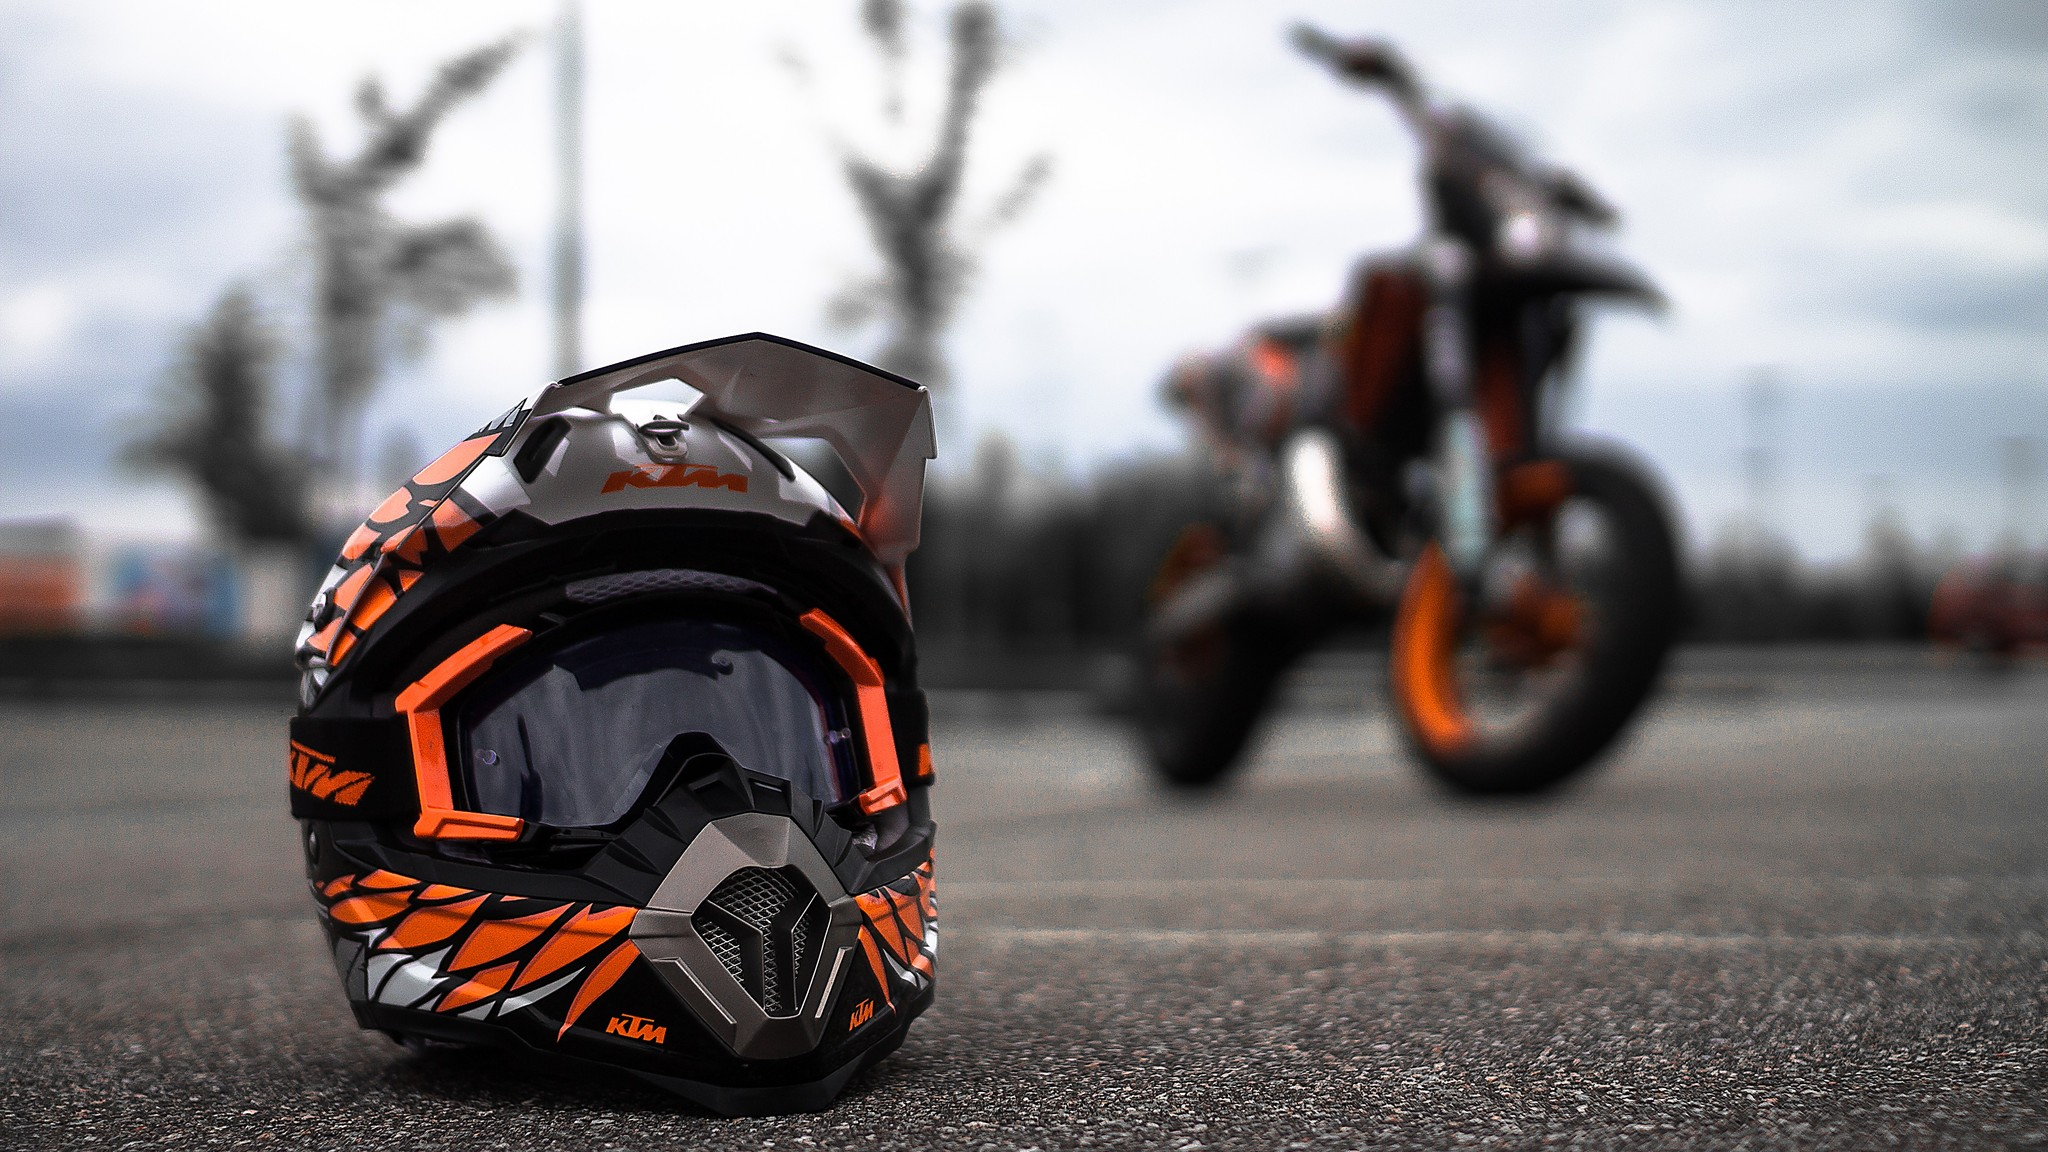 ktm helmet desktop wallpaper 60564